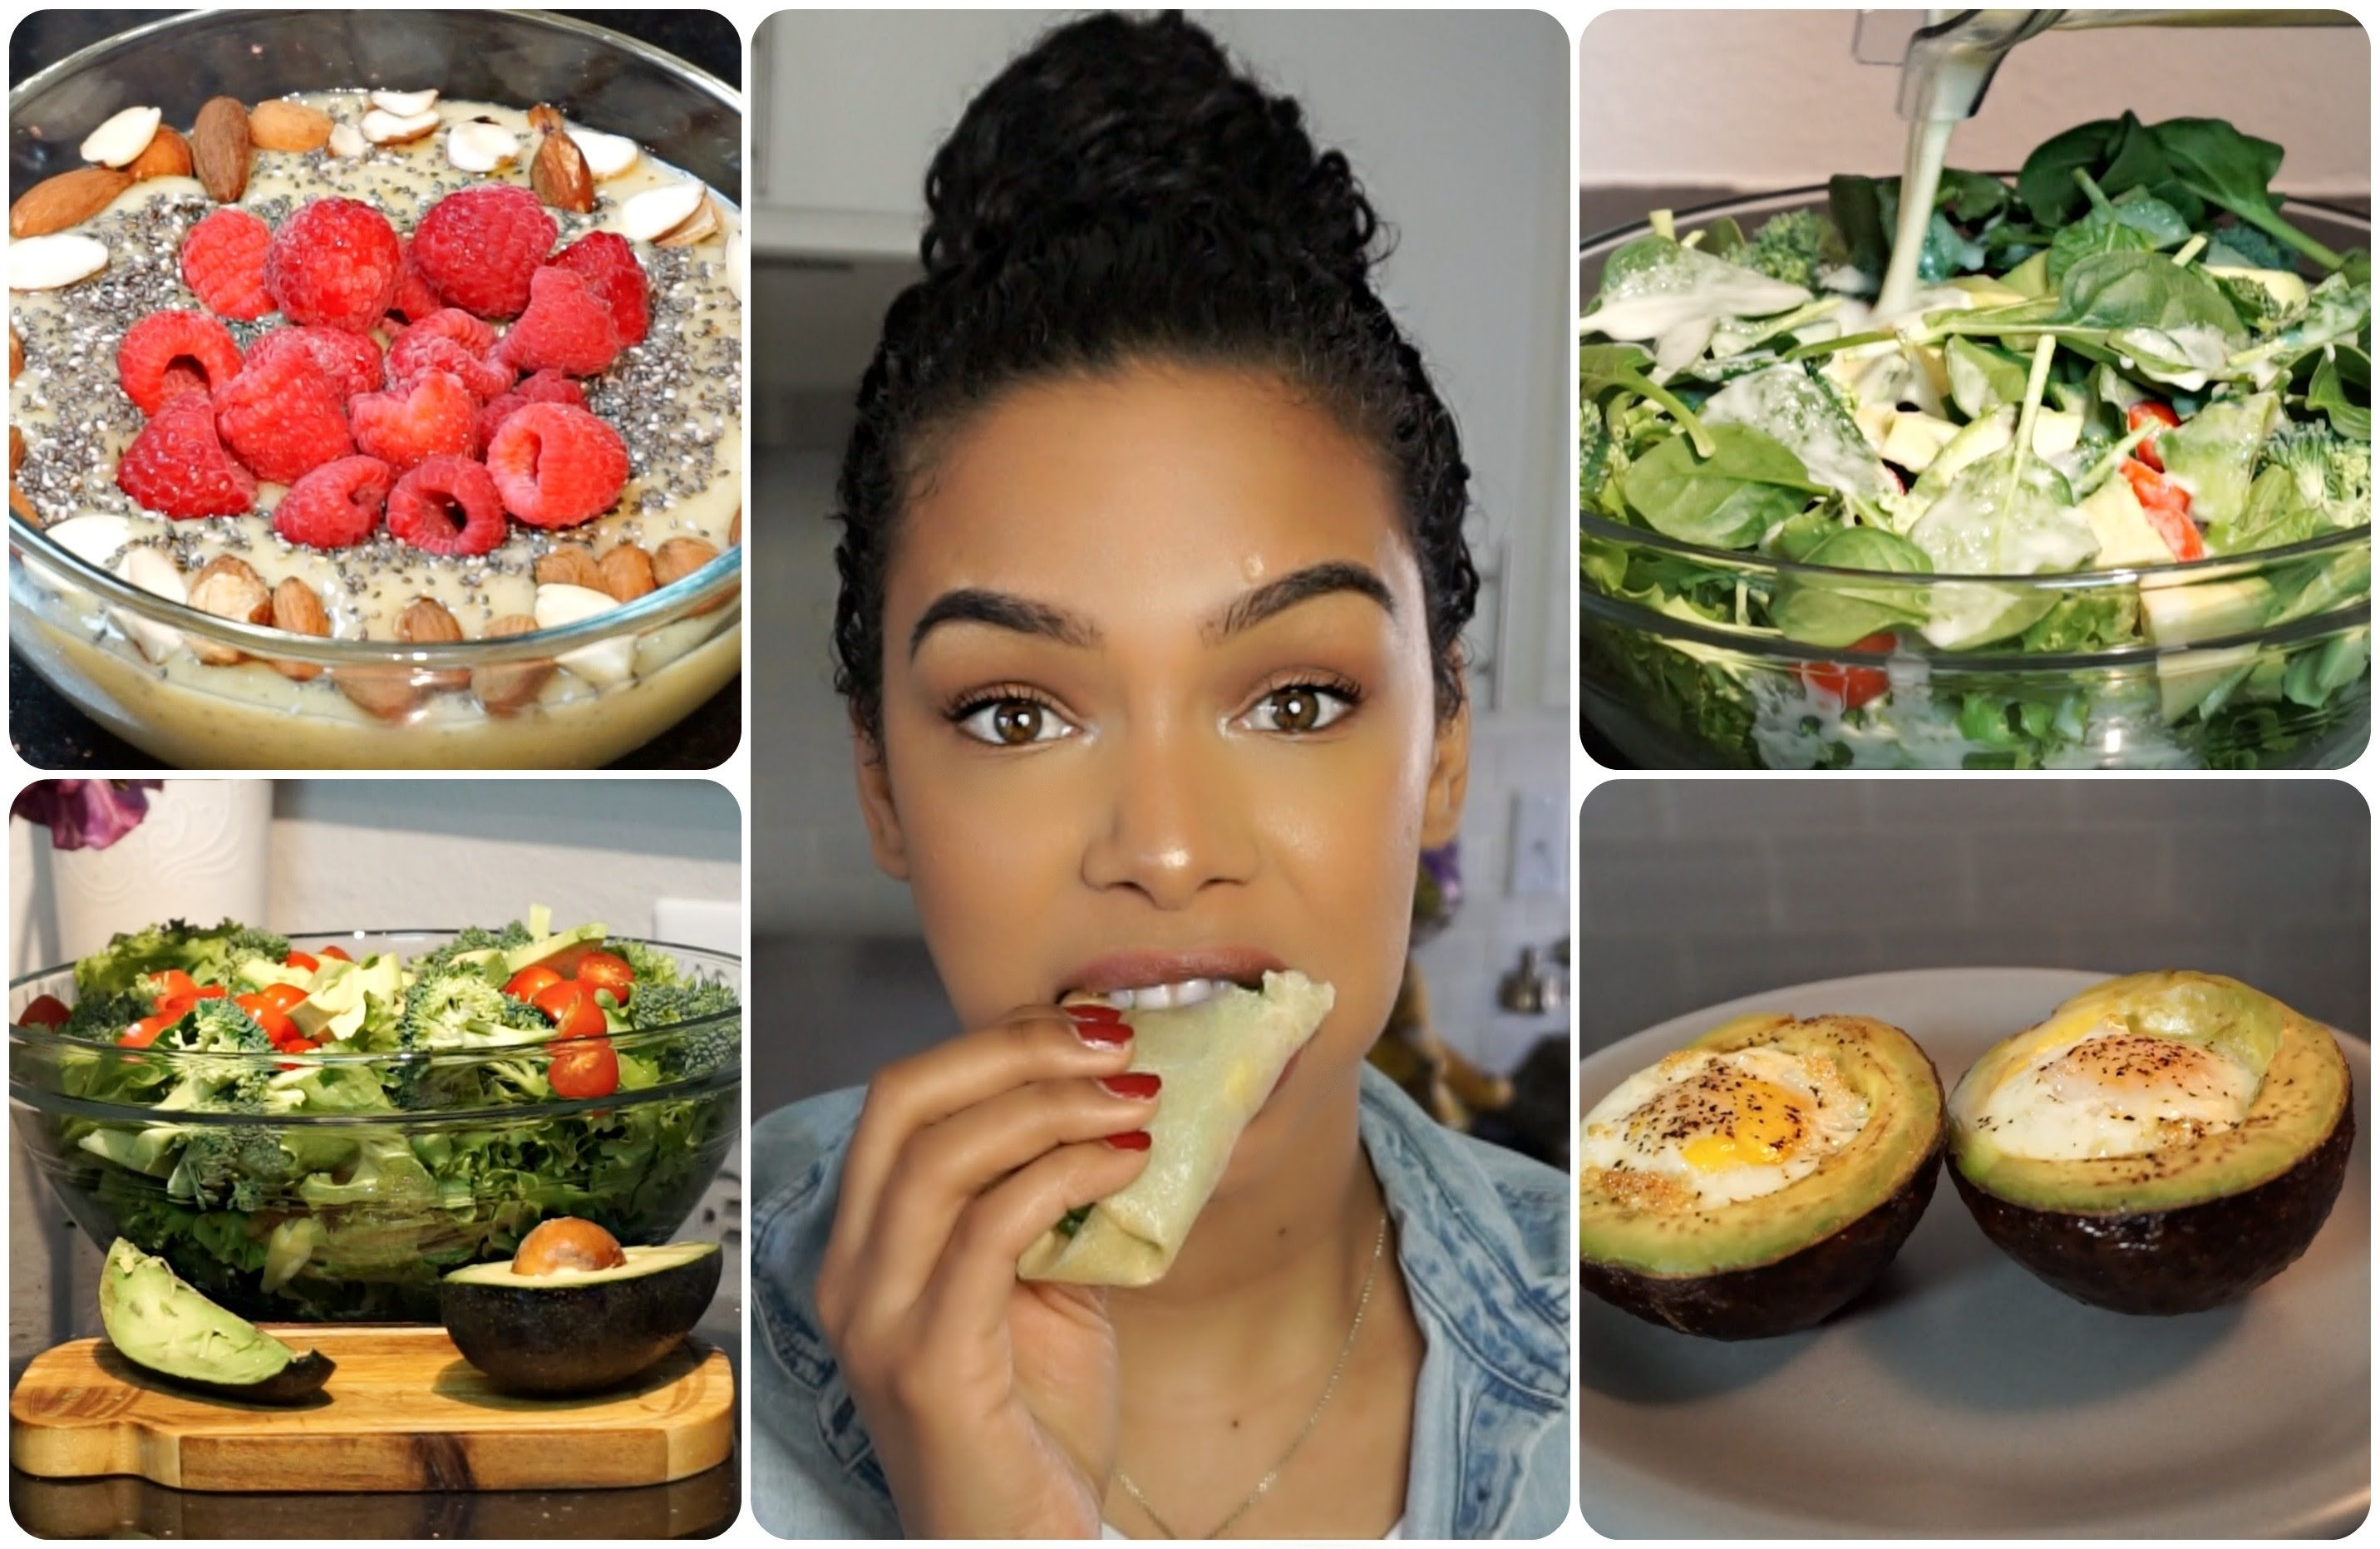 10 Great Quick Easy Healthy Lunch Ideas quick easy healthy meal ideas youtube 2021